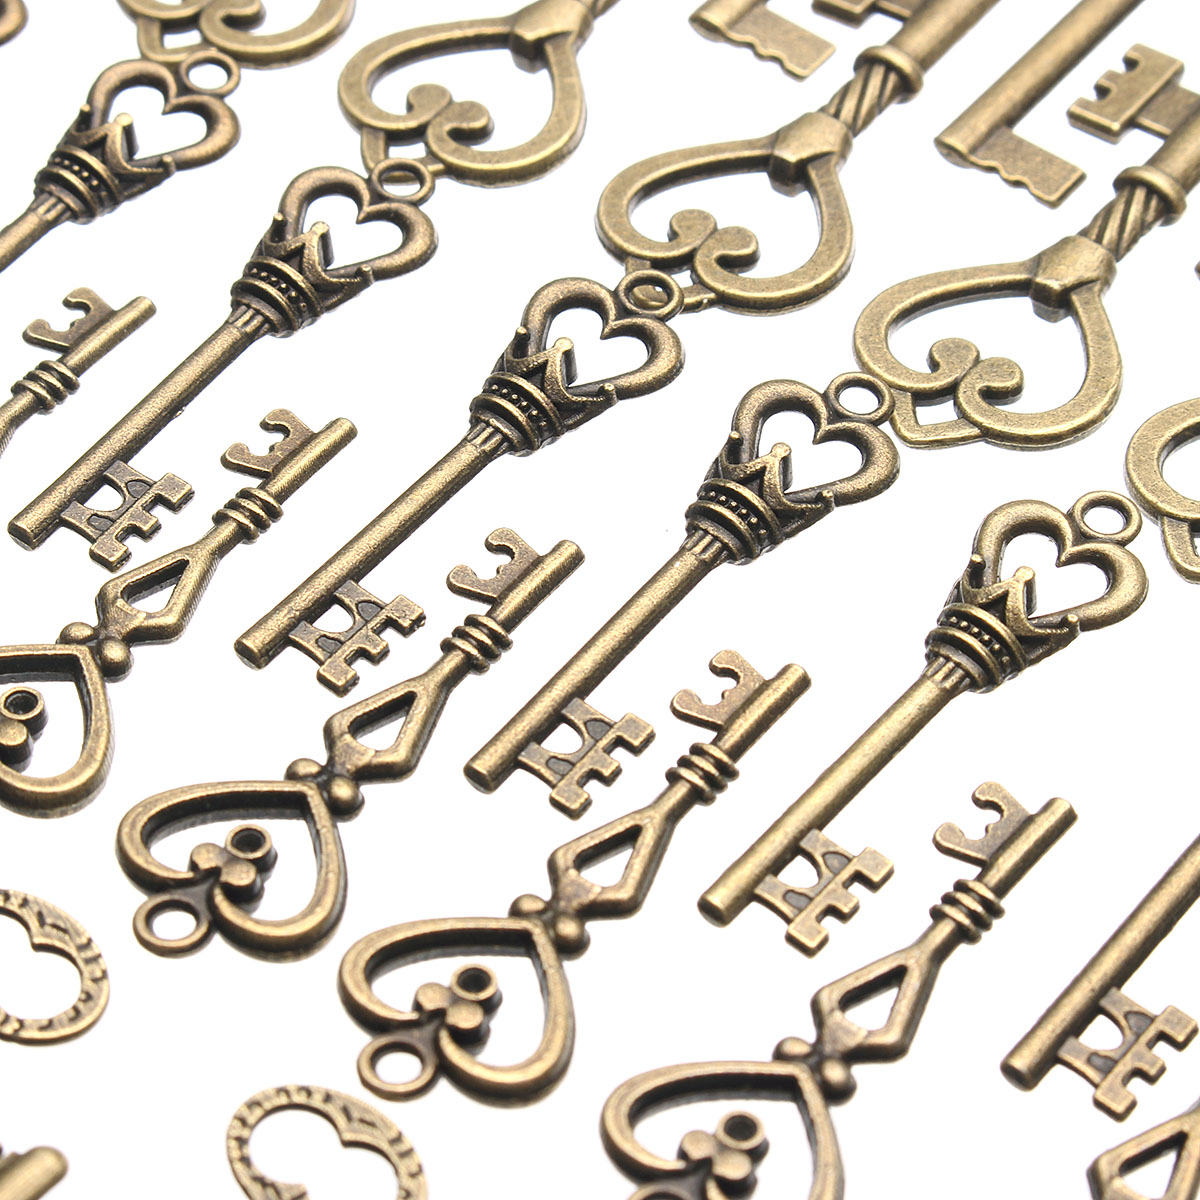 48Pcs Vintage Bronze Key For Pendant Necklace Bracelet DIY Handmade Accessories Decoration